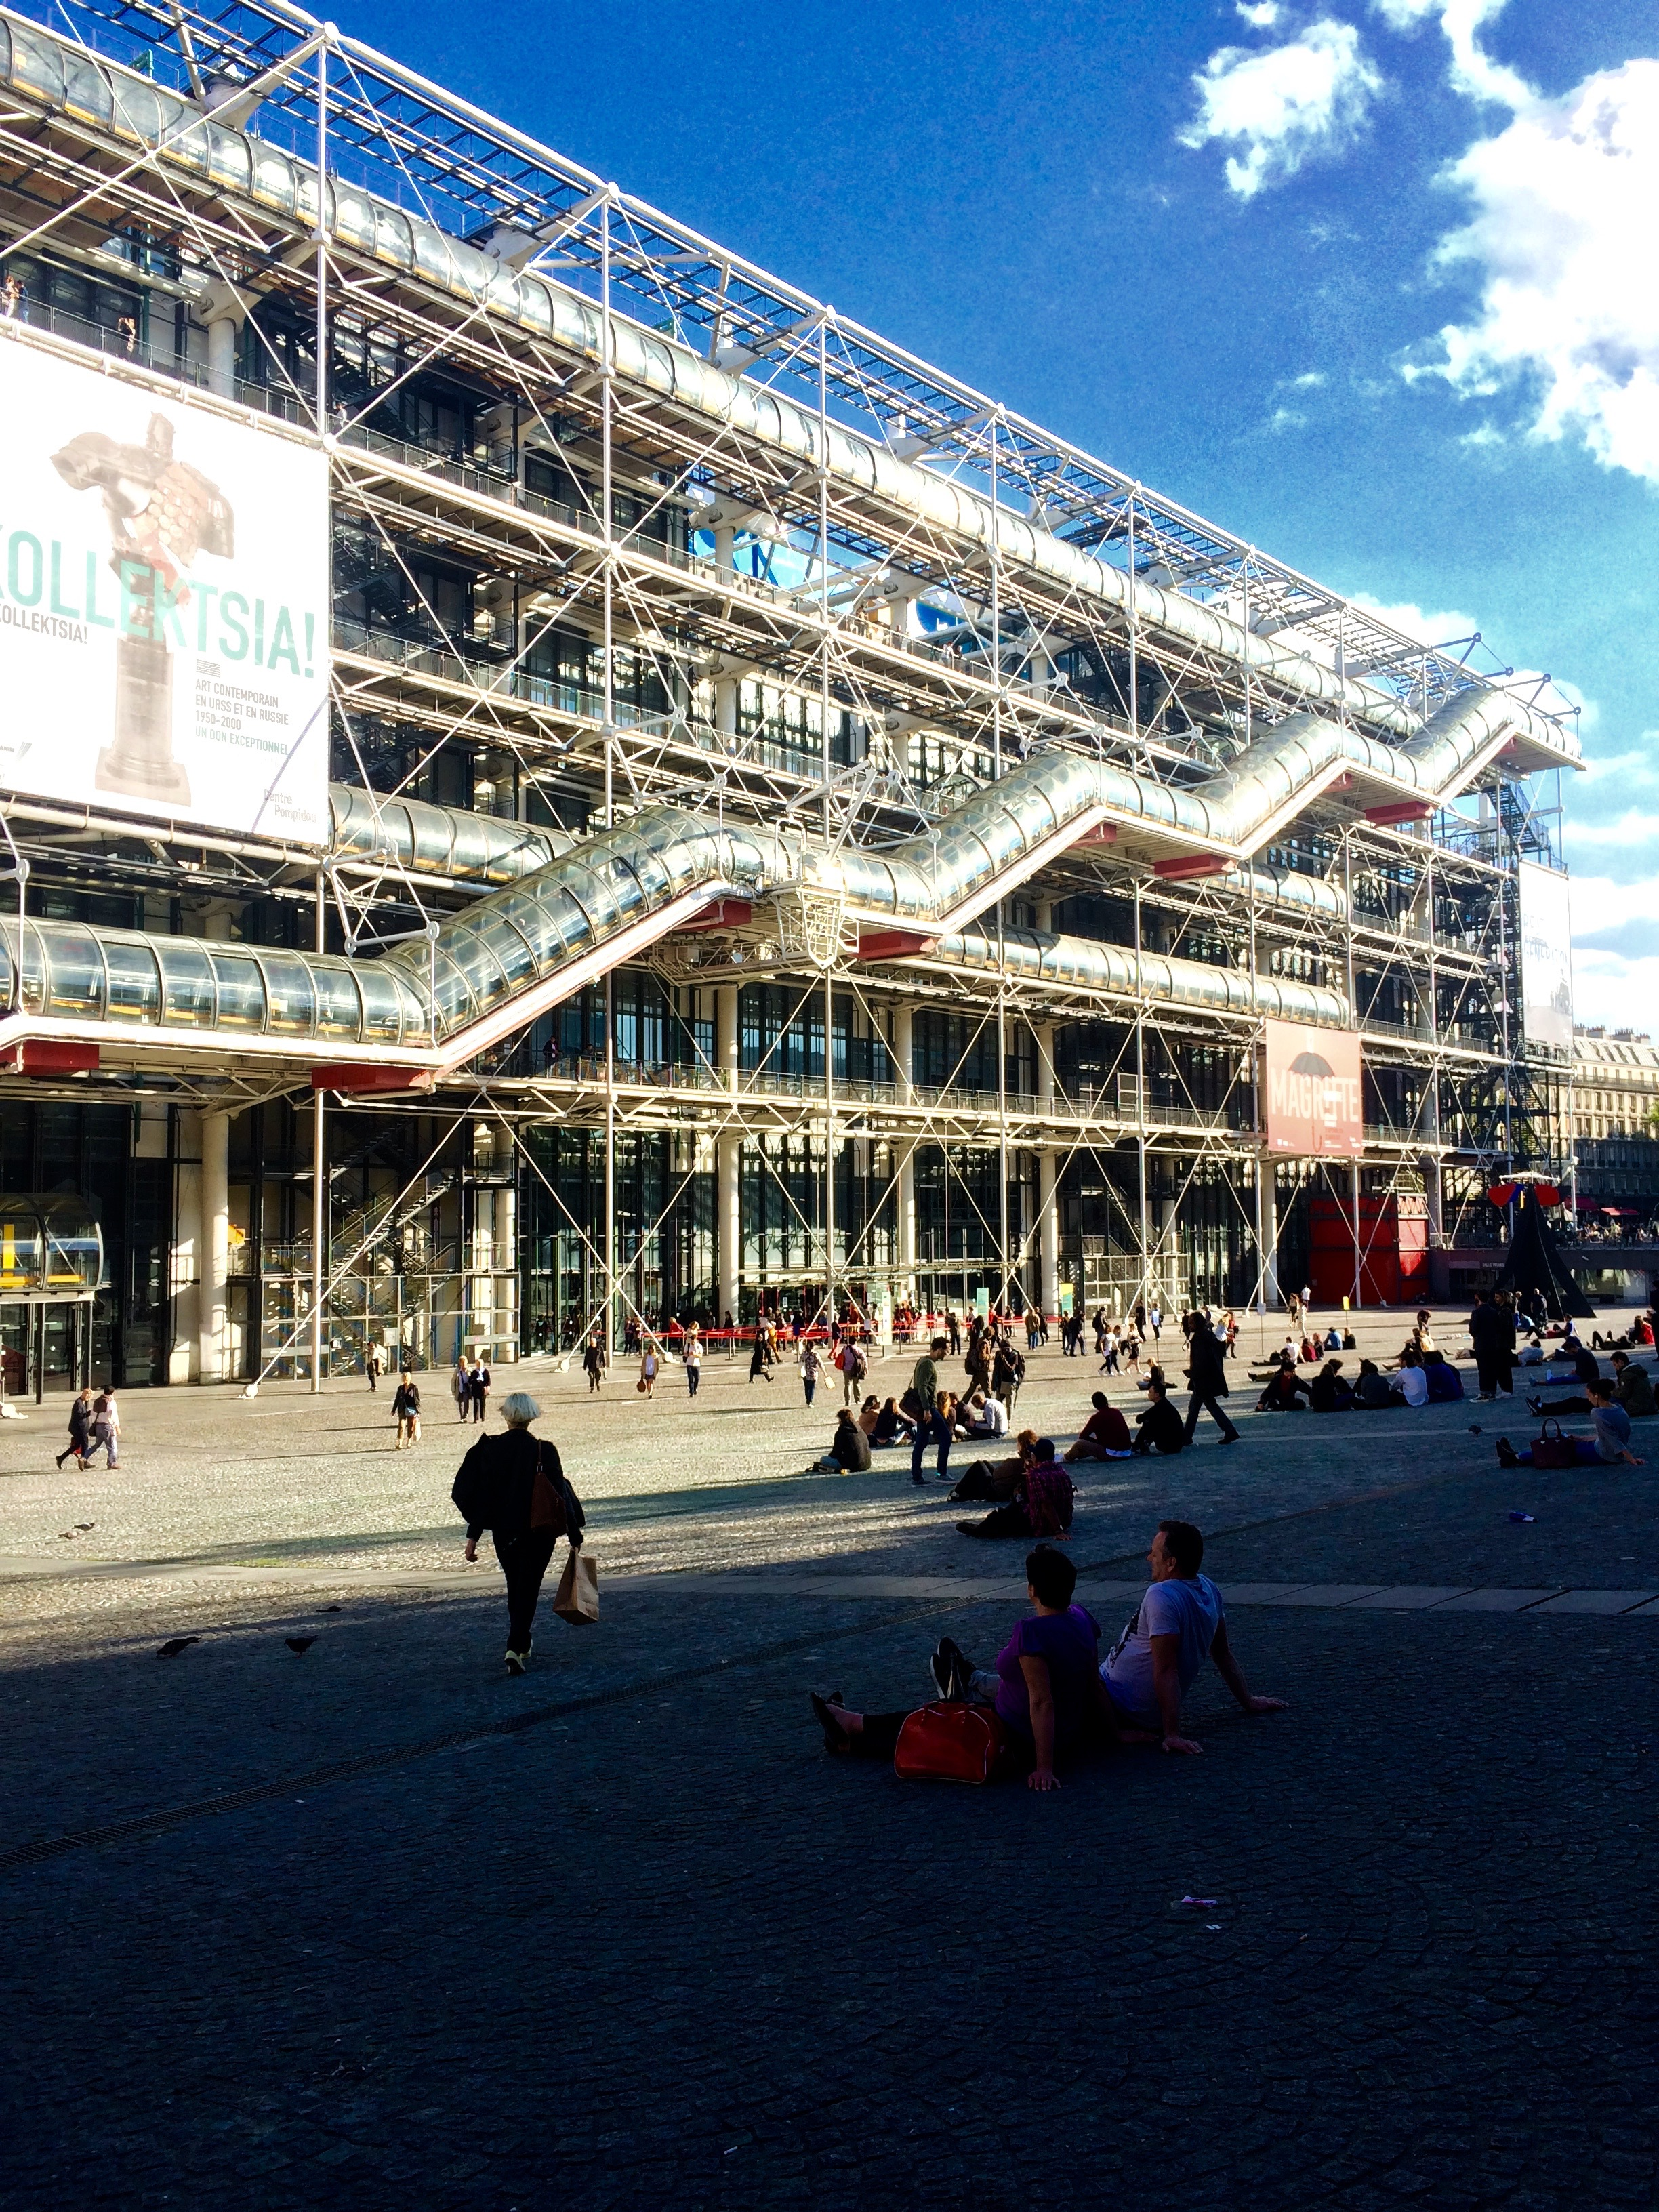 Well-known Centre Georges Pompidou in Paris, France